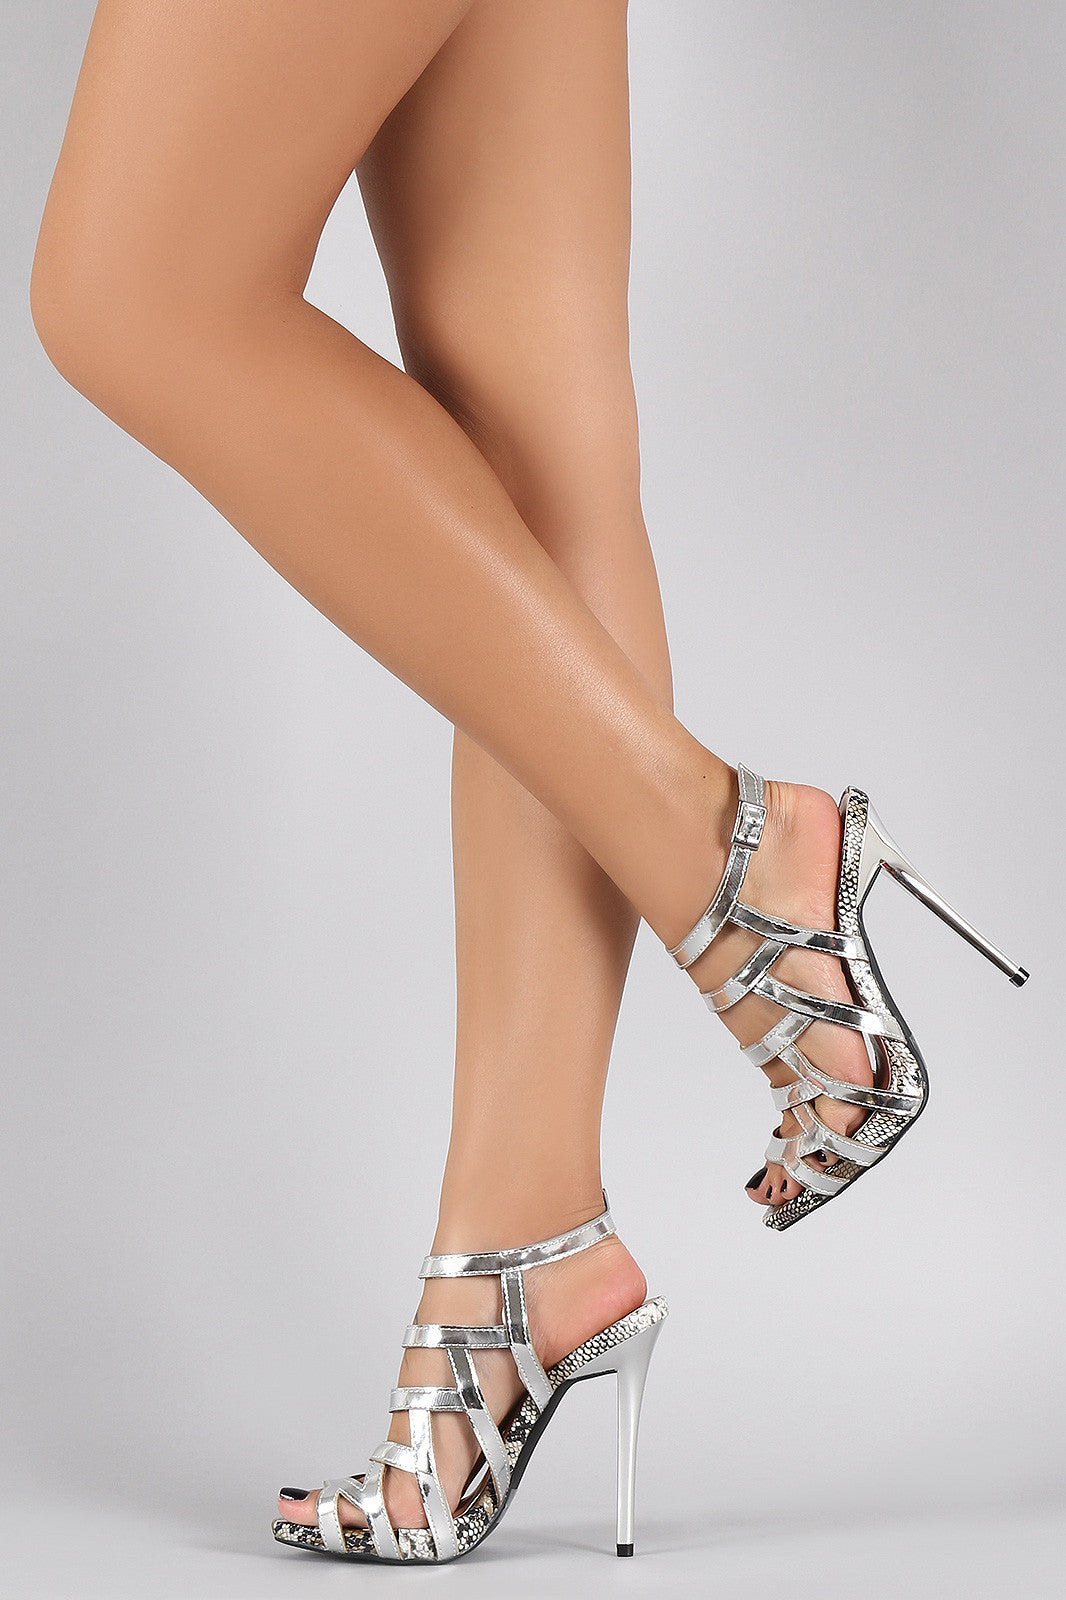 Qupid Metallic Strappy Snake Open Toe Stiletto Heel - Thick 'N' Curvy Shop - 6